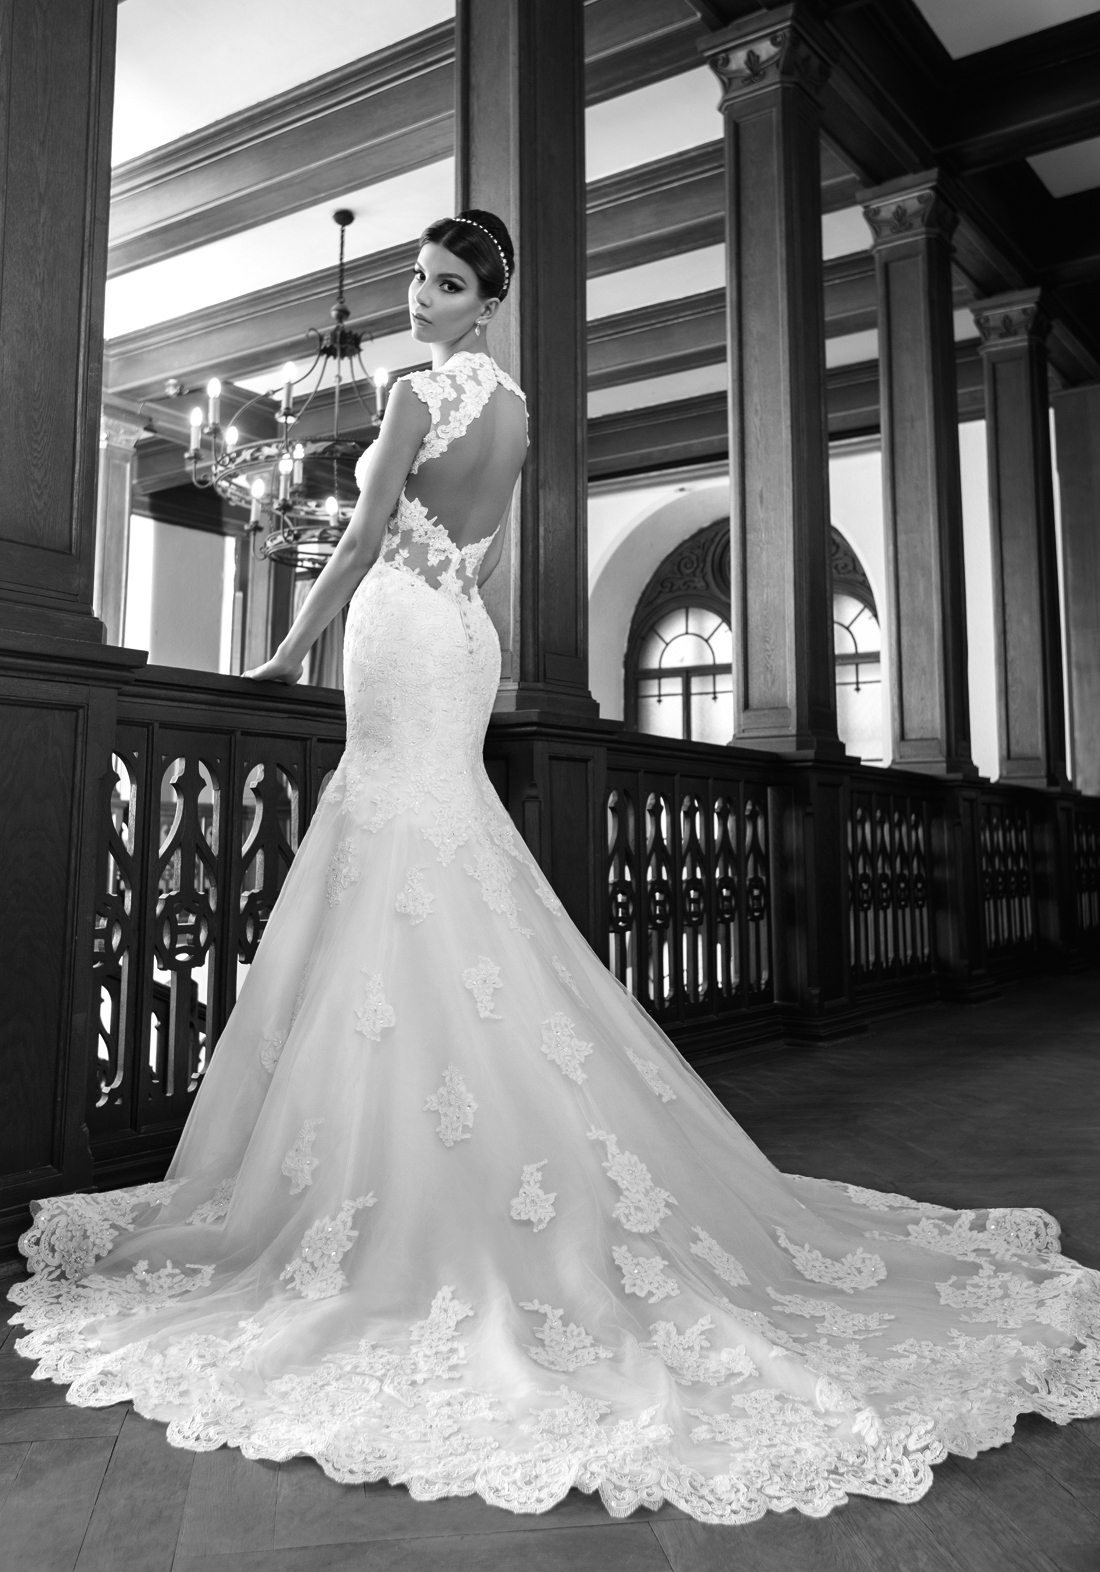 bien-savvy-wedding-dresses-2014-collection-11-01232014